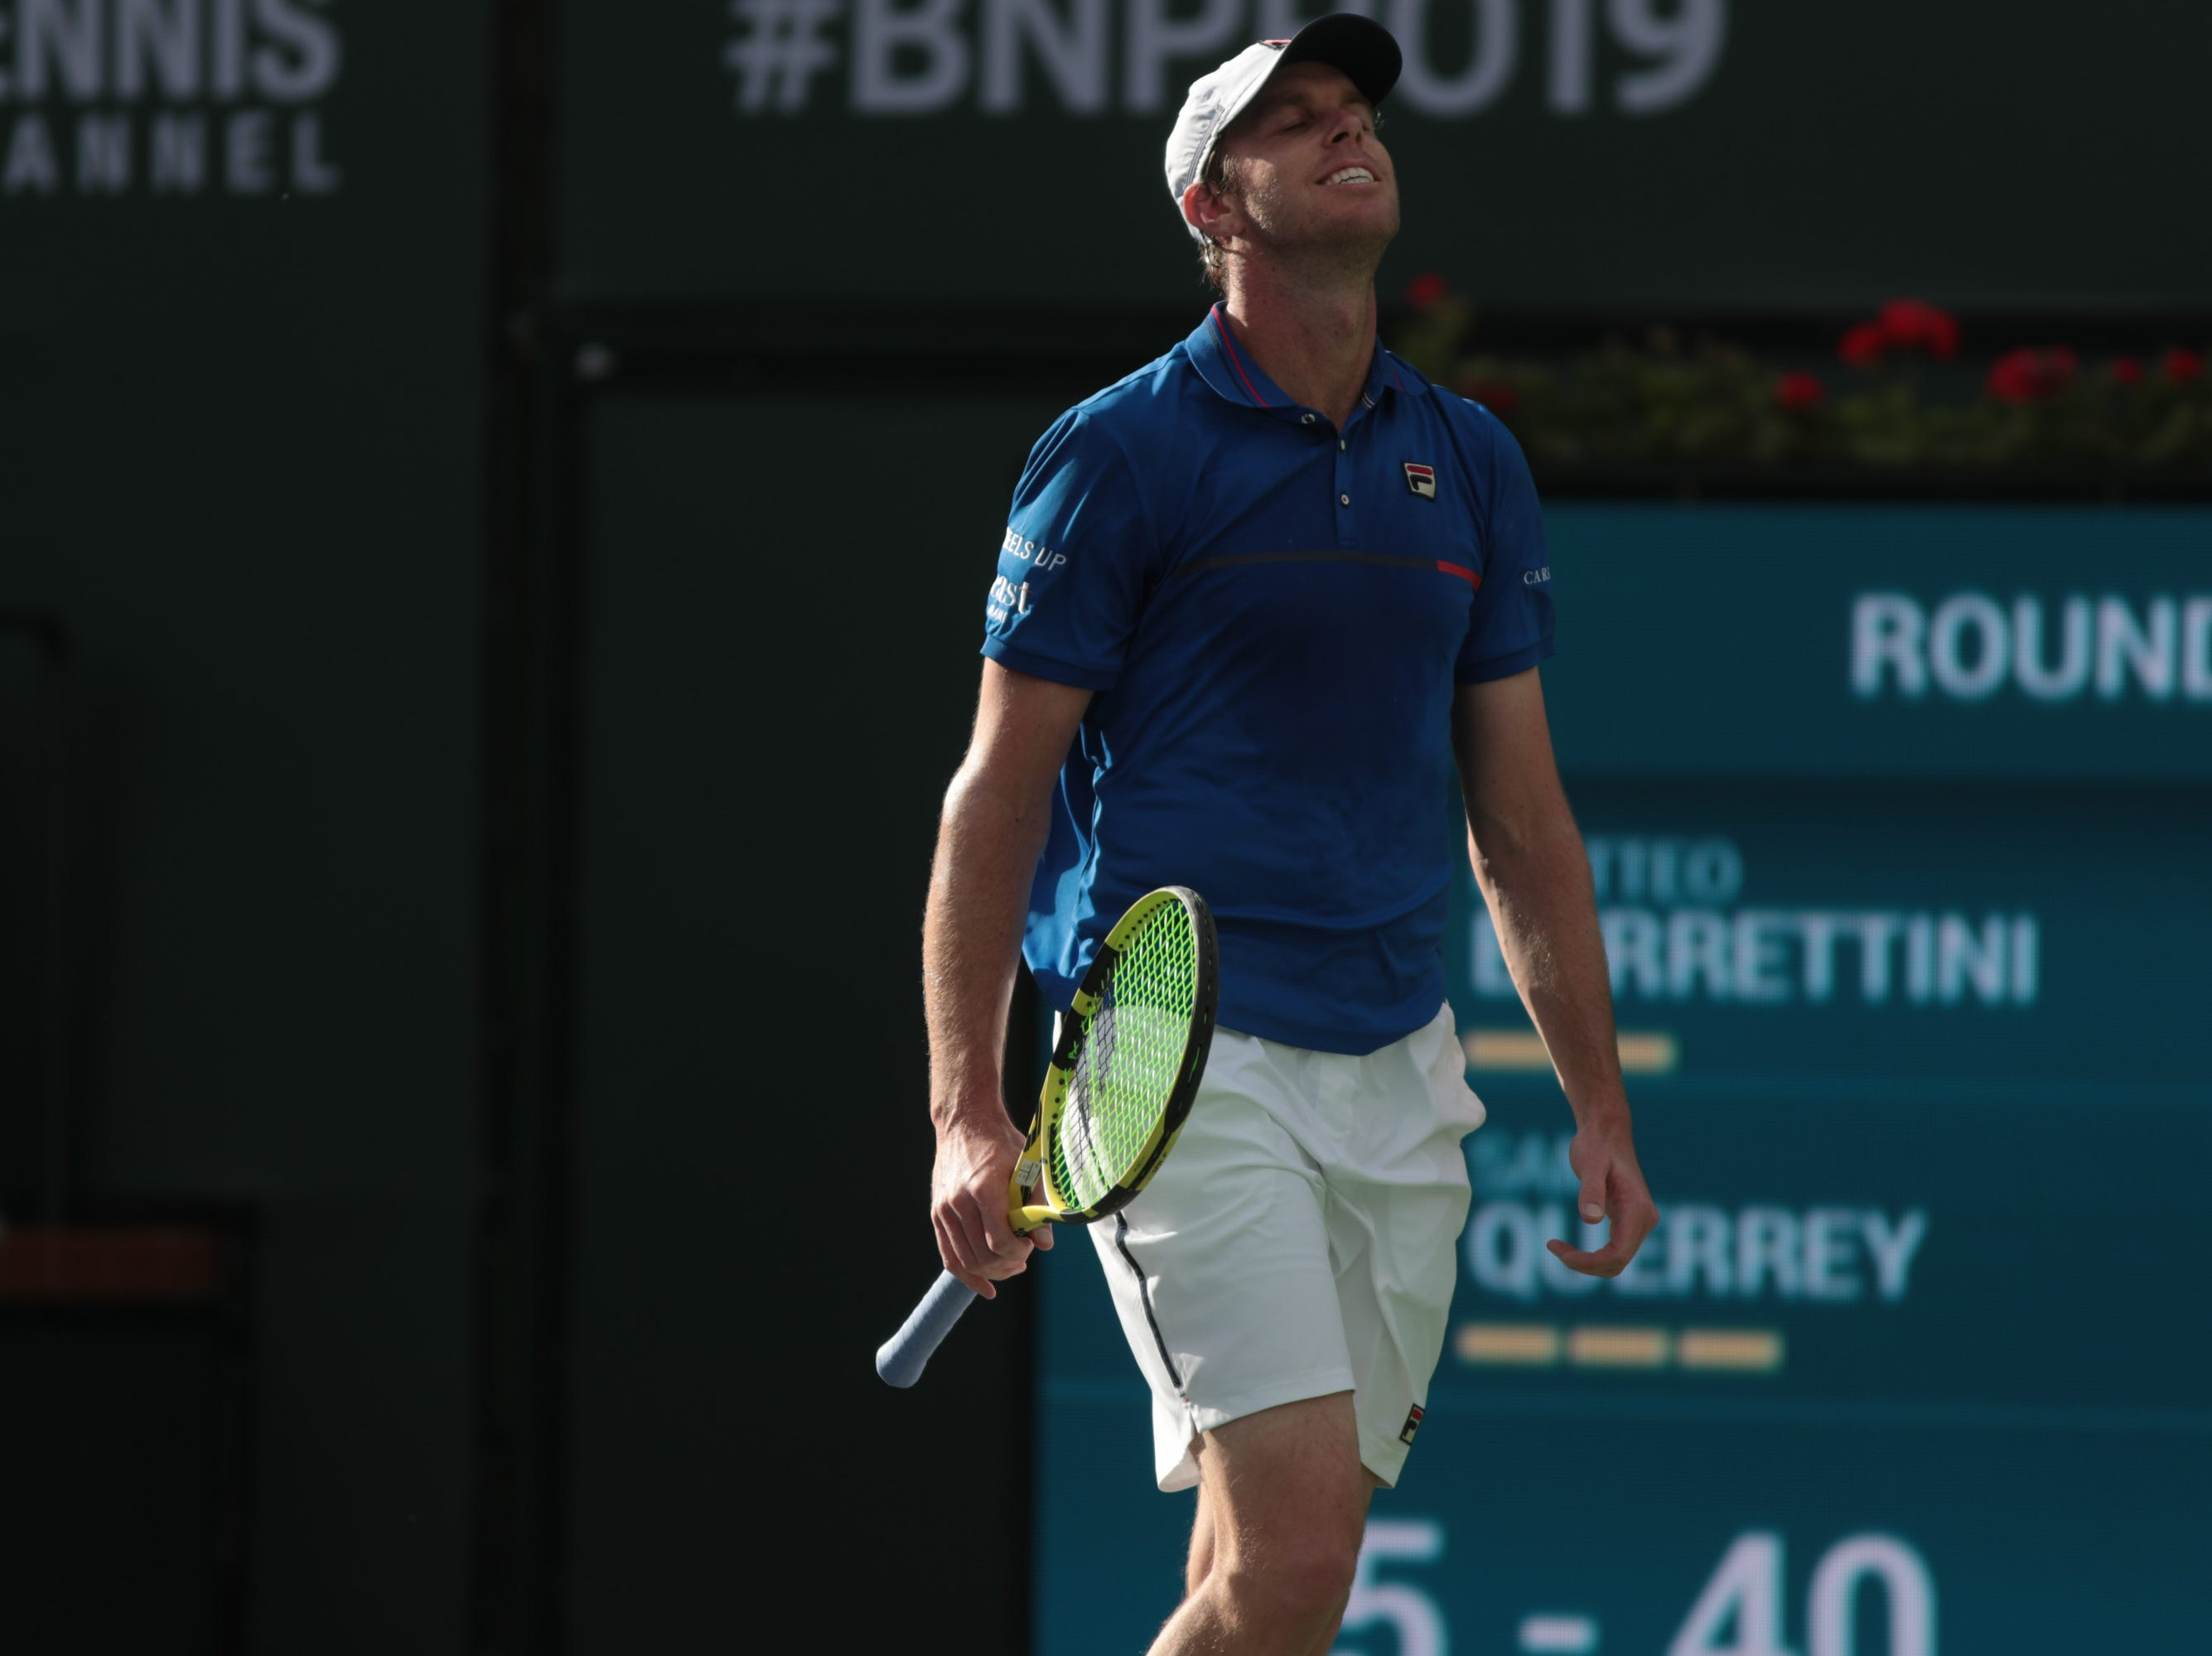 Sam Querrey reacts to a point against Matteo Berrettini at the BNP Paribas Open, Indian Wells, Calif., Thursday, March 7, 2019.